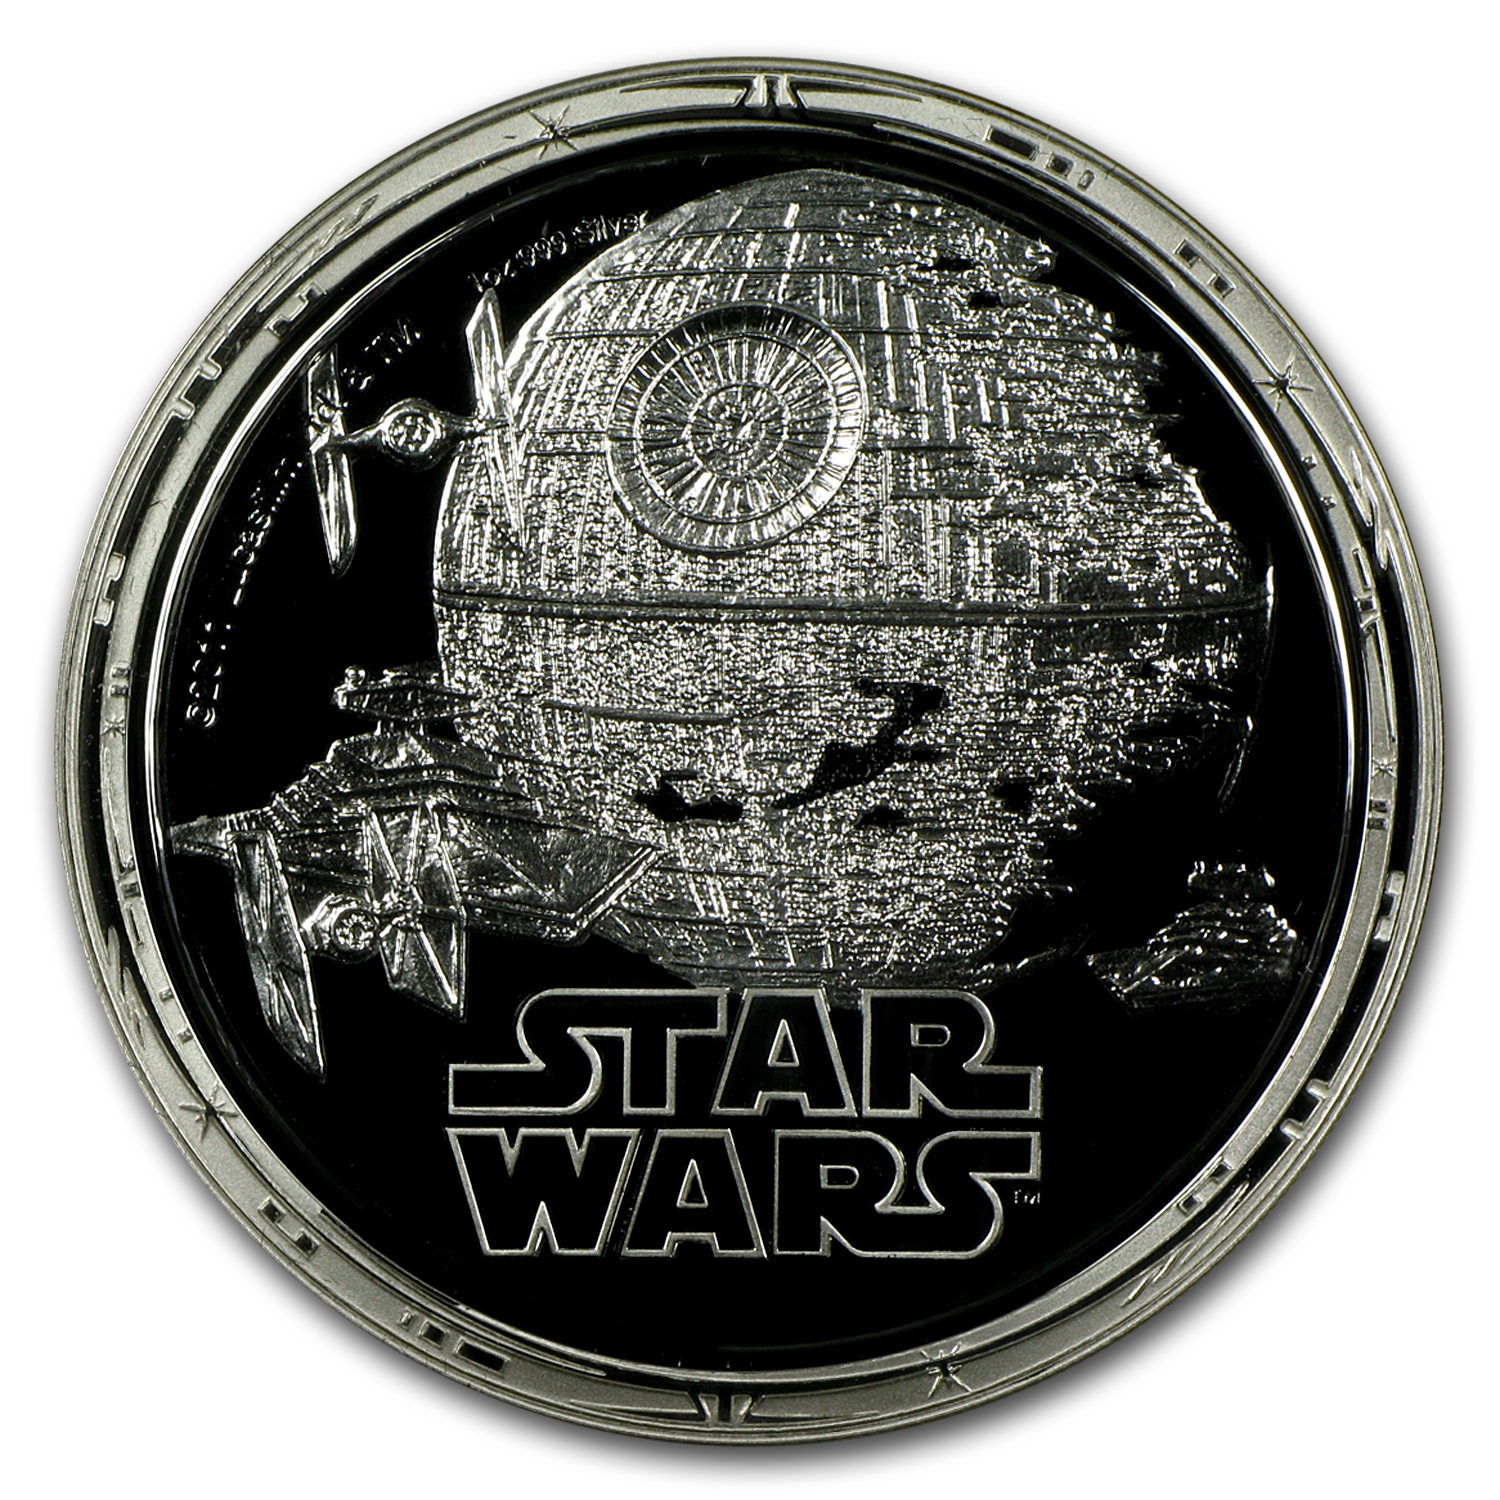 2011 Star Wars Proof Silver 4-Coin Set - Dark Side